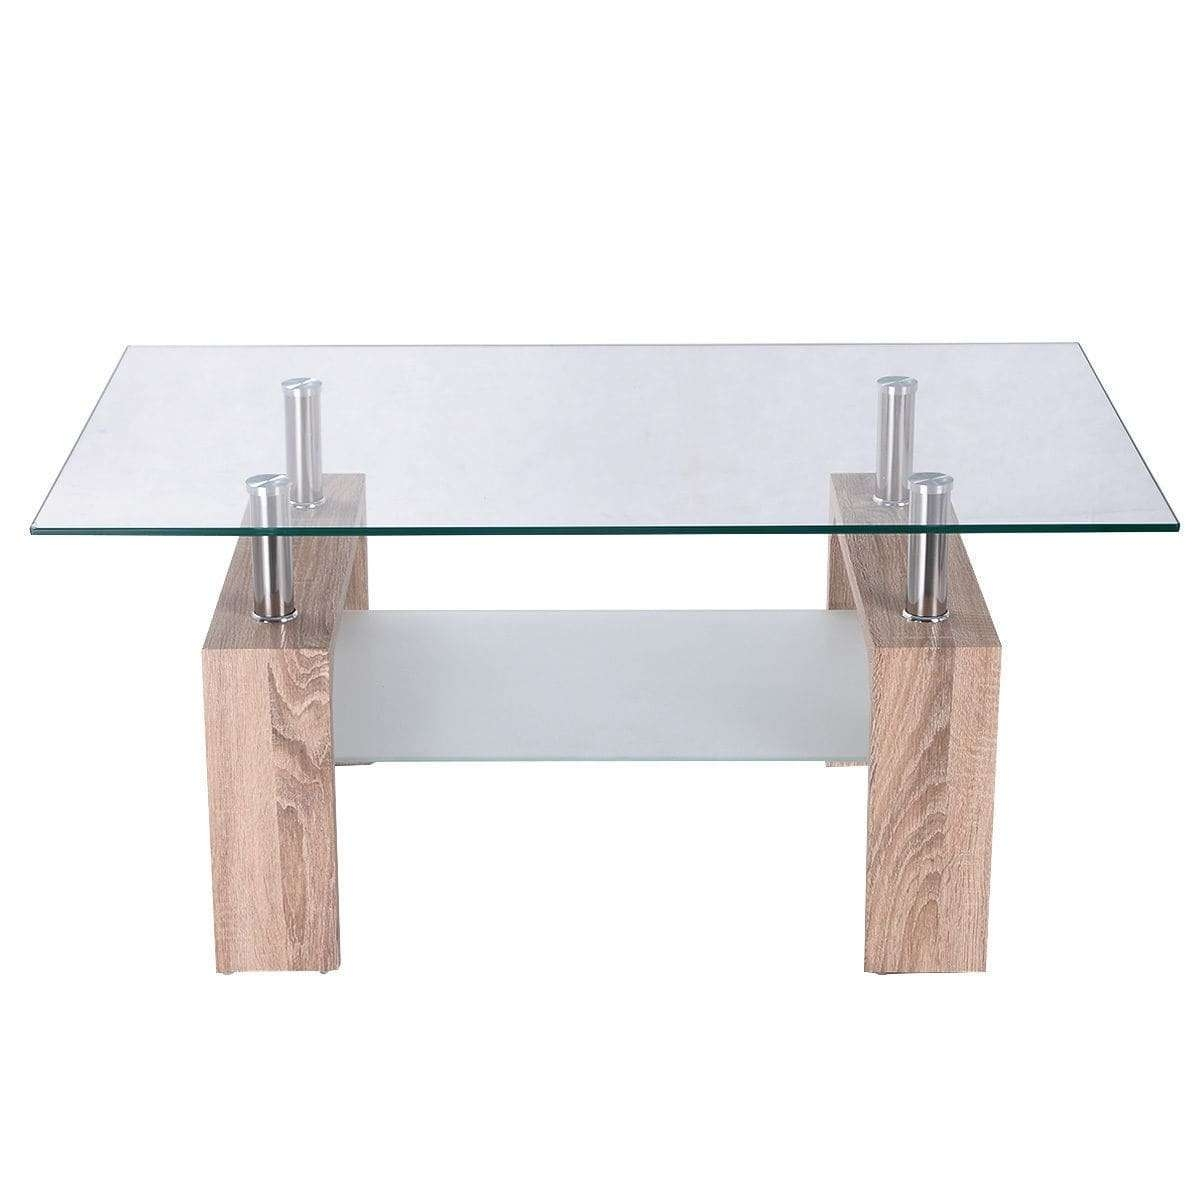 Costway Rectangular Glass Coffee Table Wood W/ Shelf ,tea Table Intended For Most Popular Rectangle Glass Coffee Table (View 7 of 20)